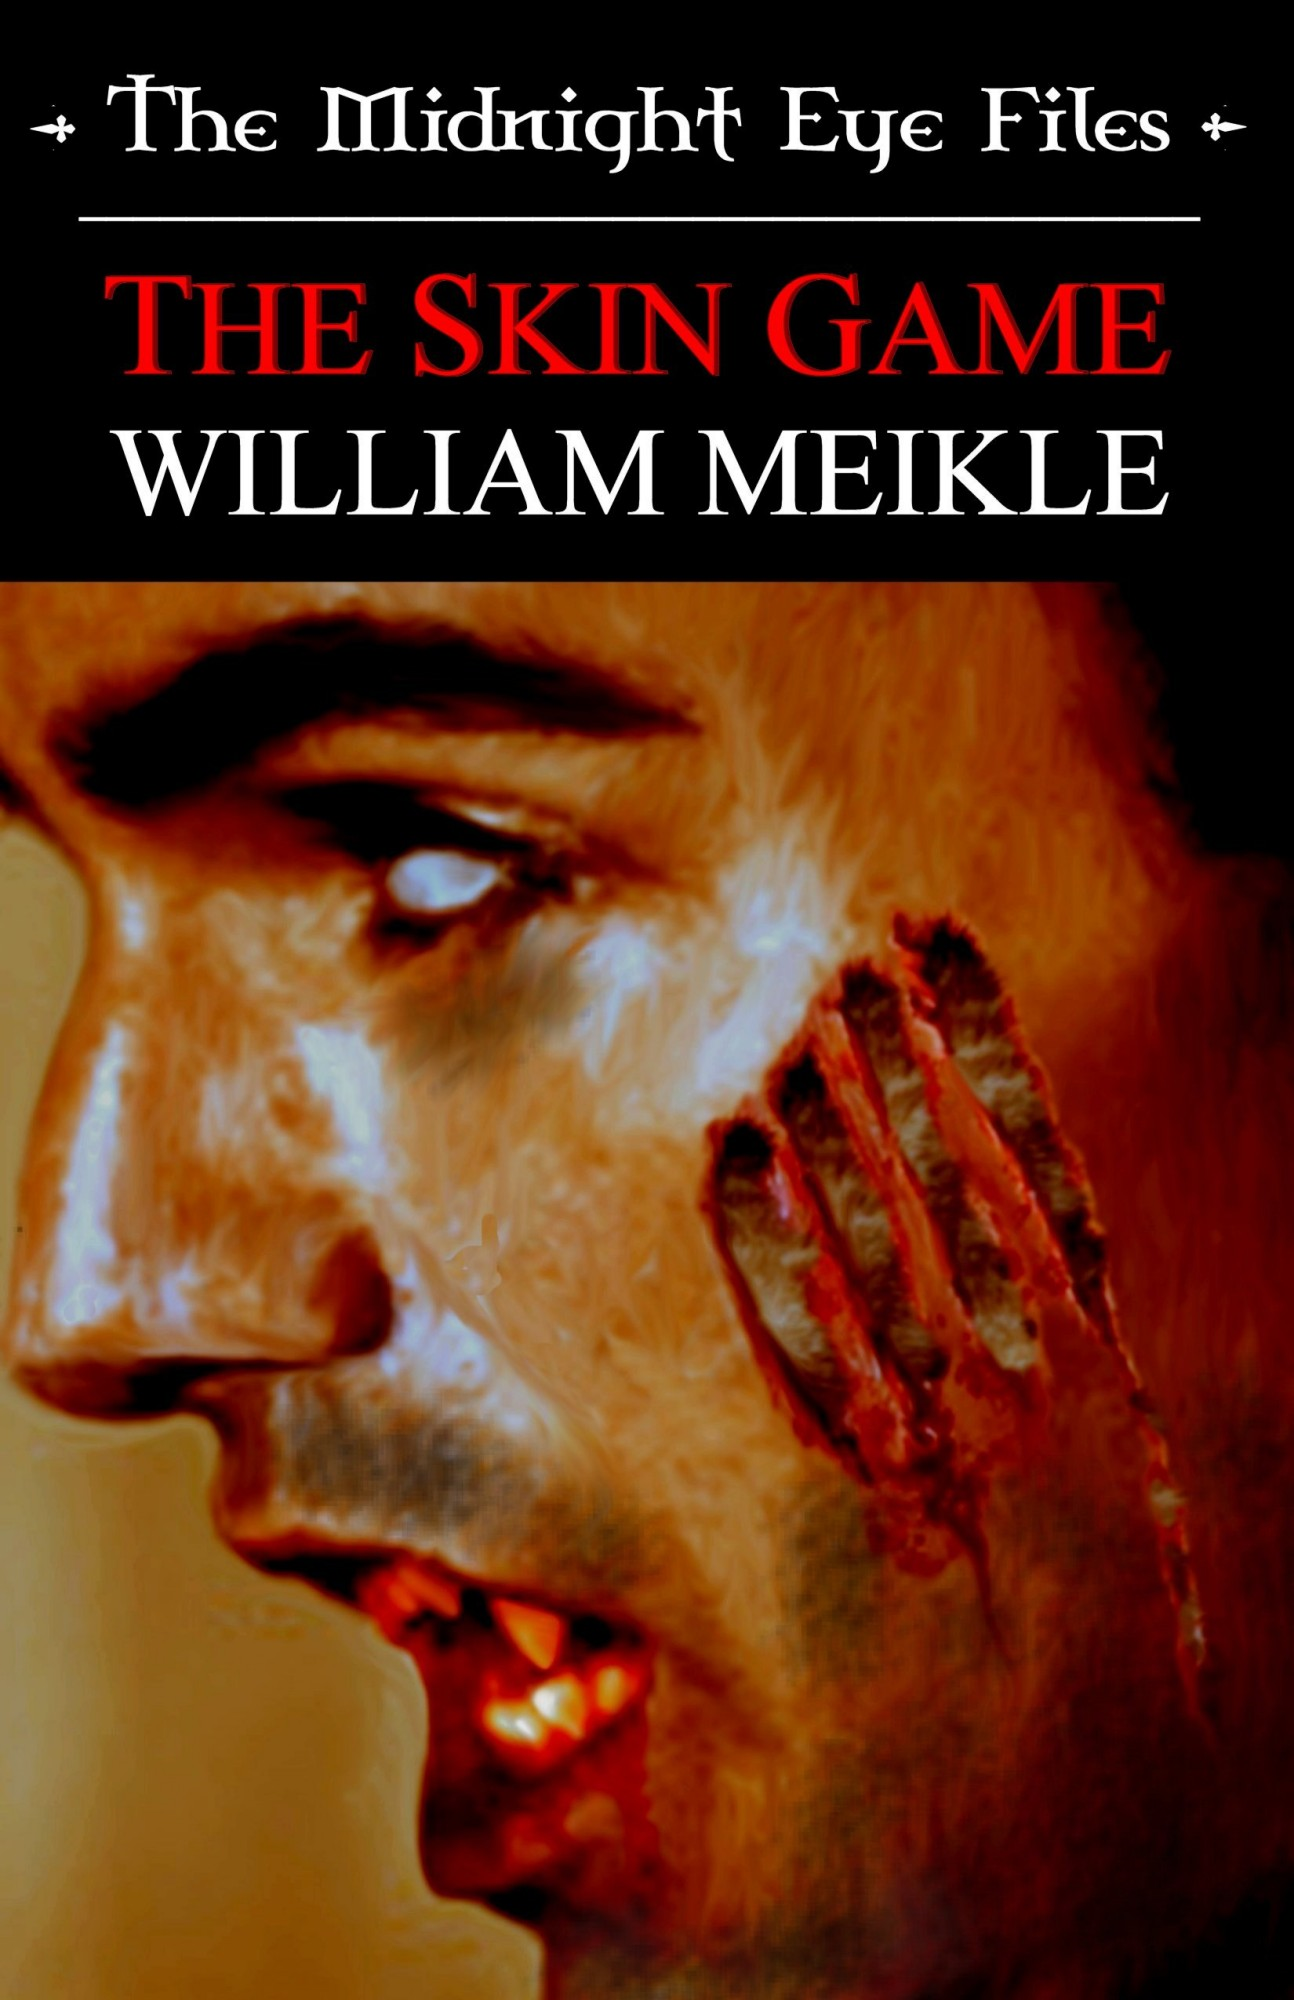 The Midnight Eye Files: The Skin Game By: William Meikle